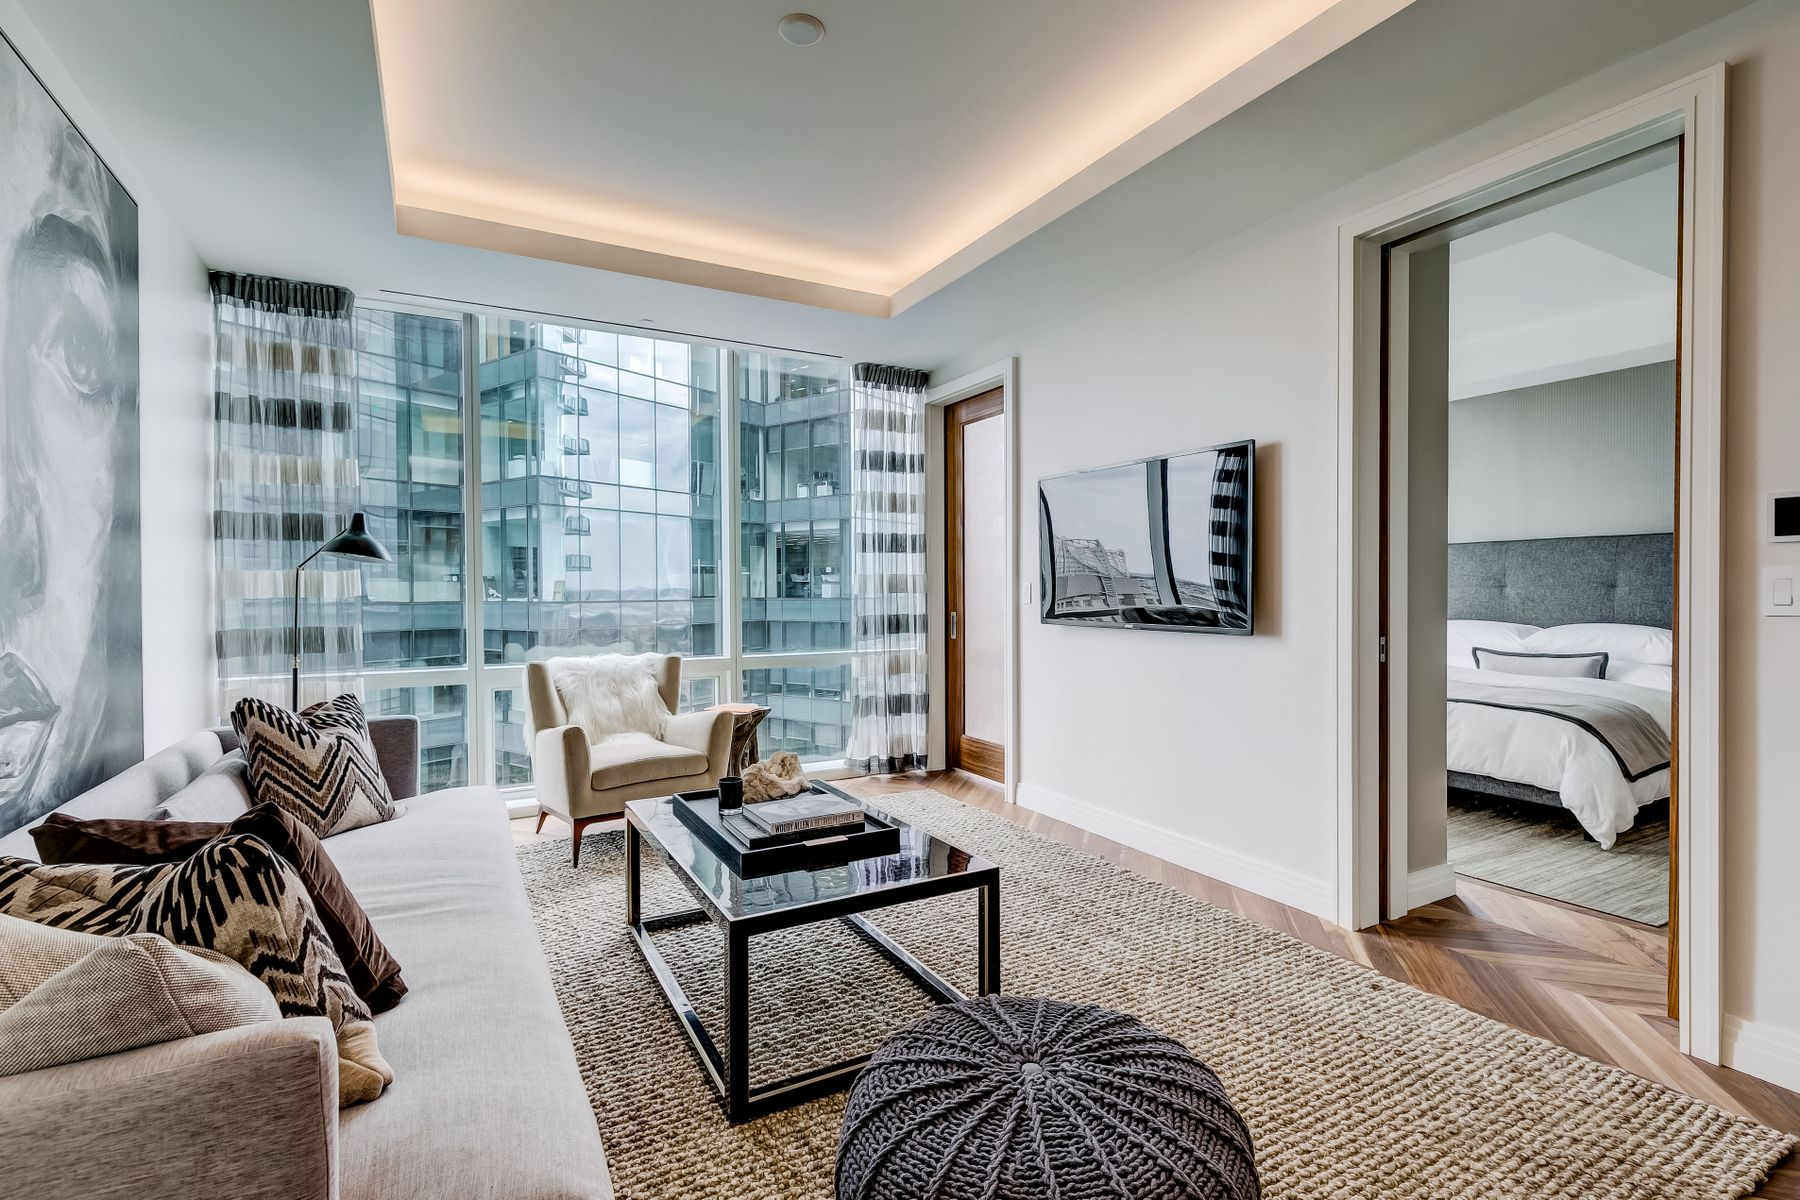 Condominium for Sale at Four Seasons Residences 200 International Drive # 2007 Baltimore, Maryland 21202 United States